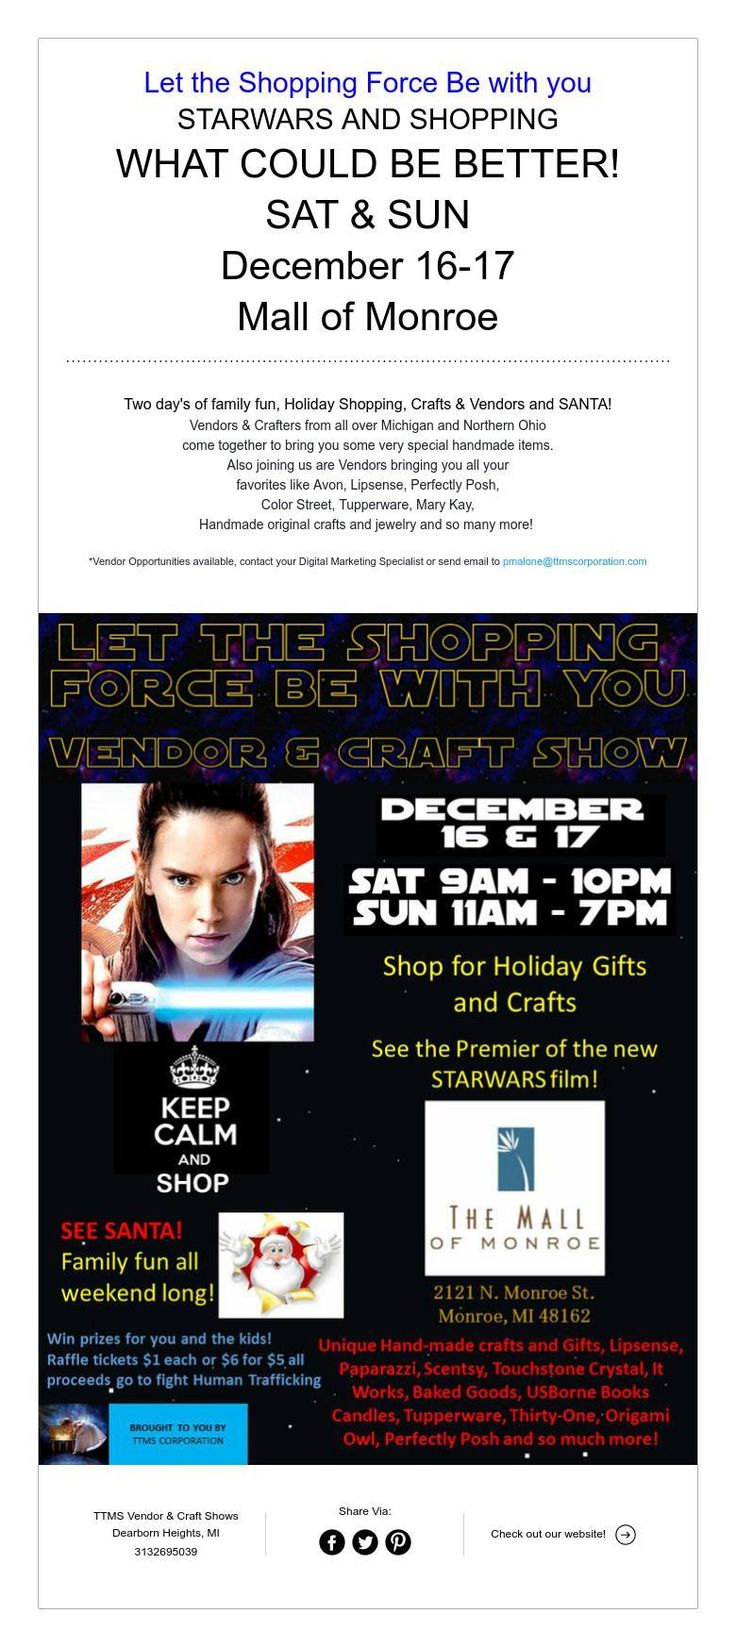 Let the Shopping Force Be with you  STARWARS AND SHOPPING  WHAT COULD BE BETTER!  SAT & SUN  December 16-17  Mall of Monroe